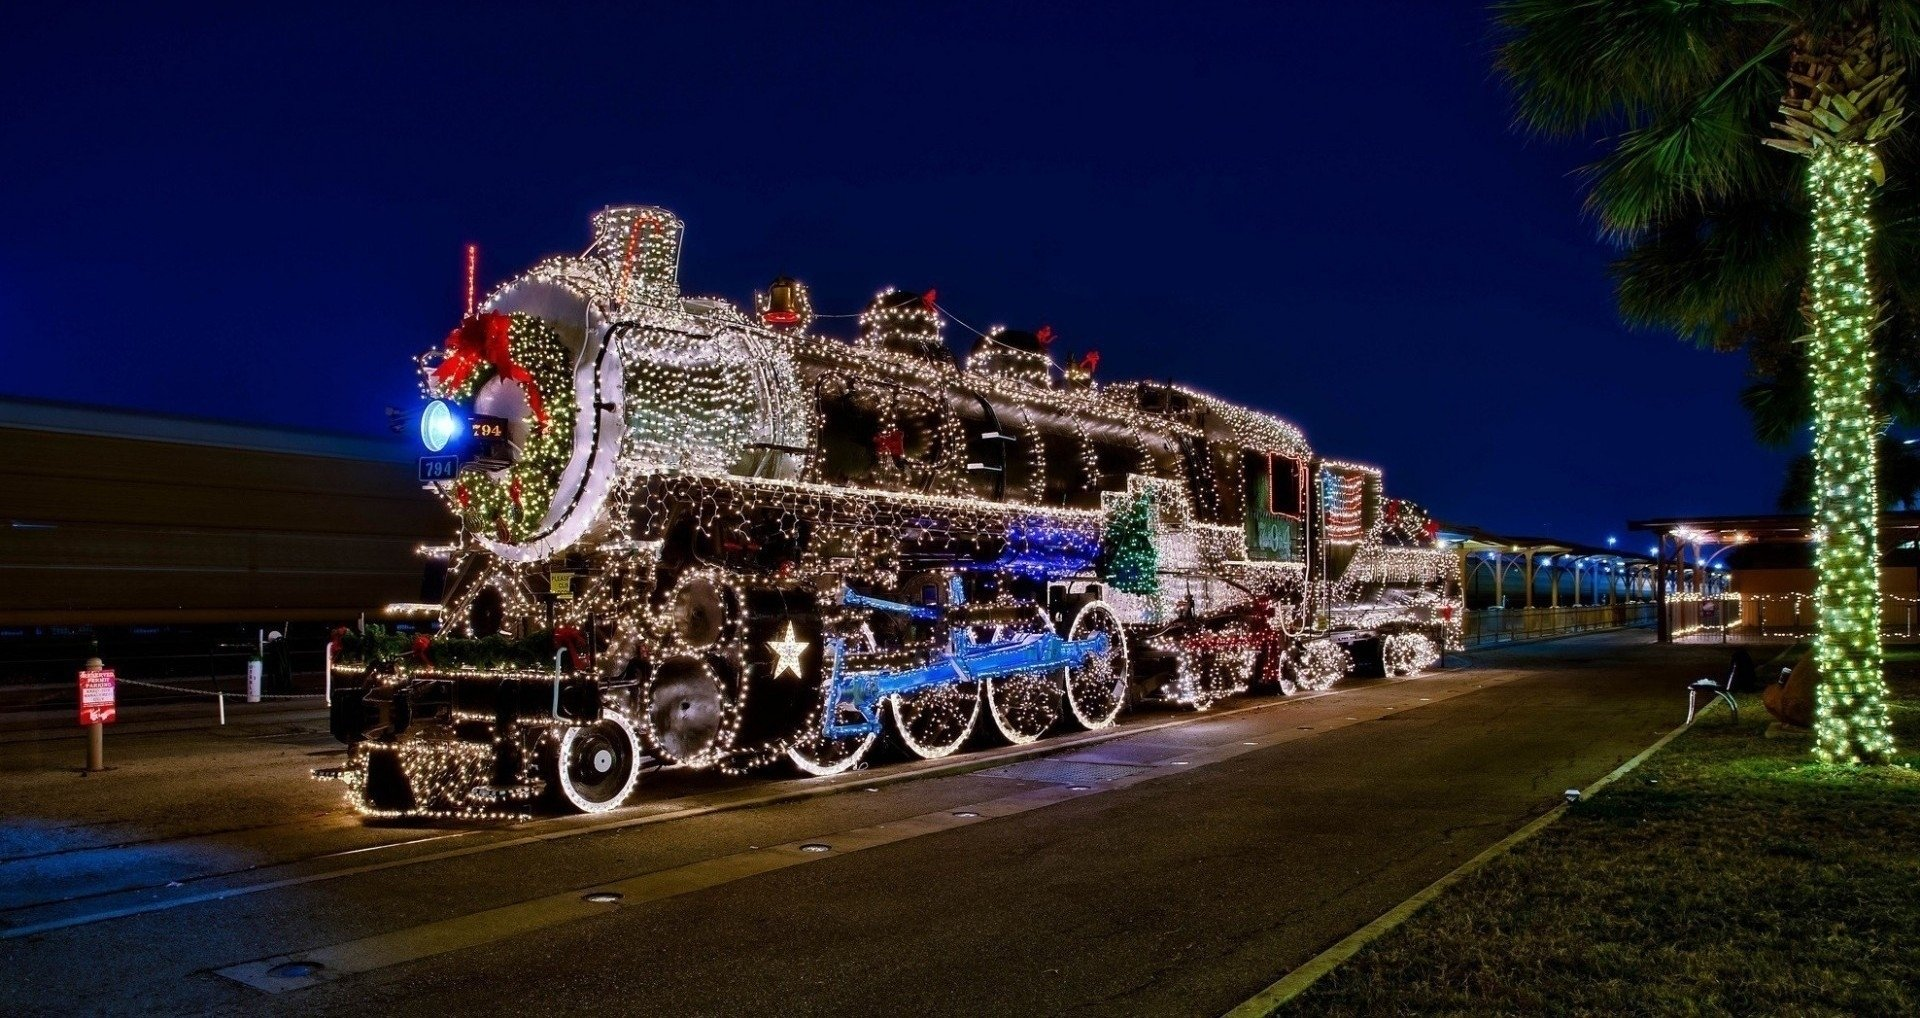 Vehicles - Locomotive  Christmas Night Ligths Christmas Lights Wallpaper